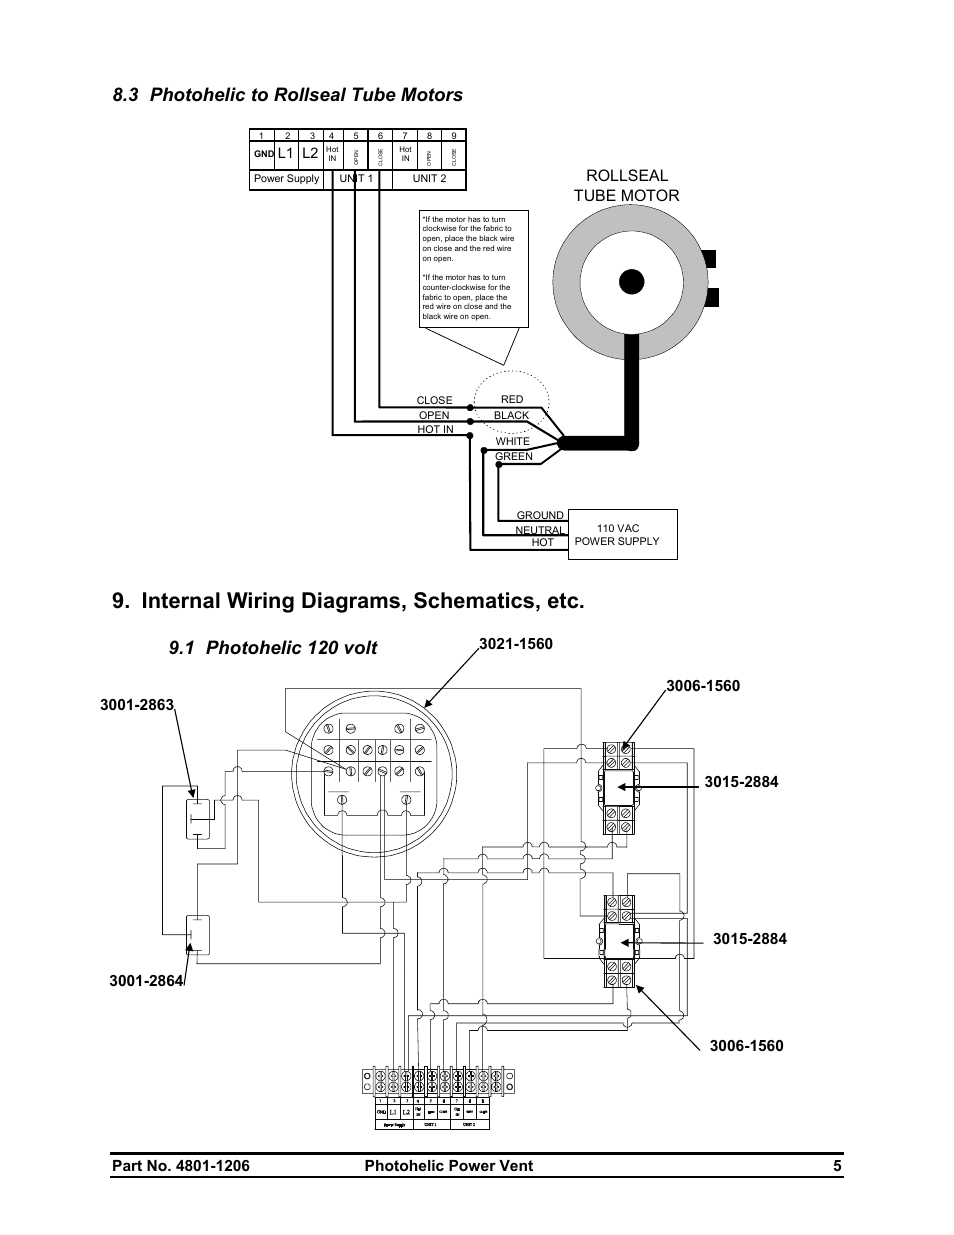 Internal wiring diagrams, schematics, etc, 3 photohelic to